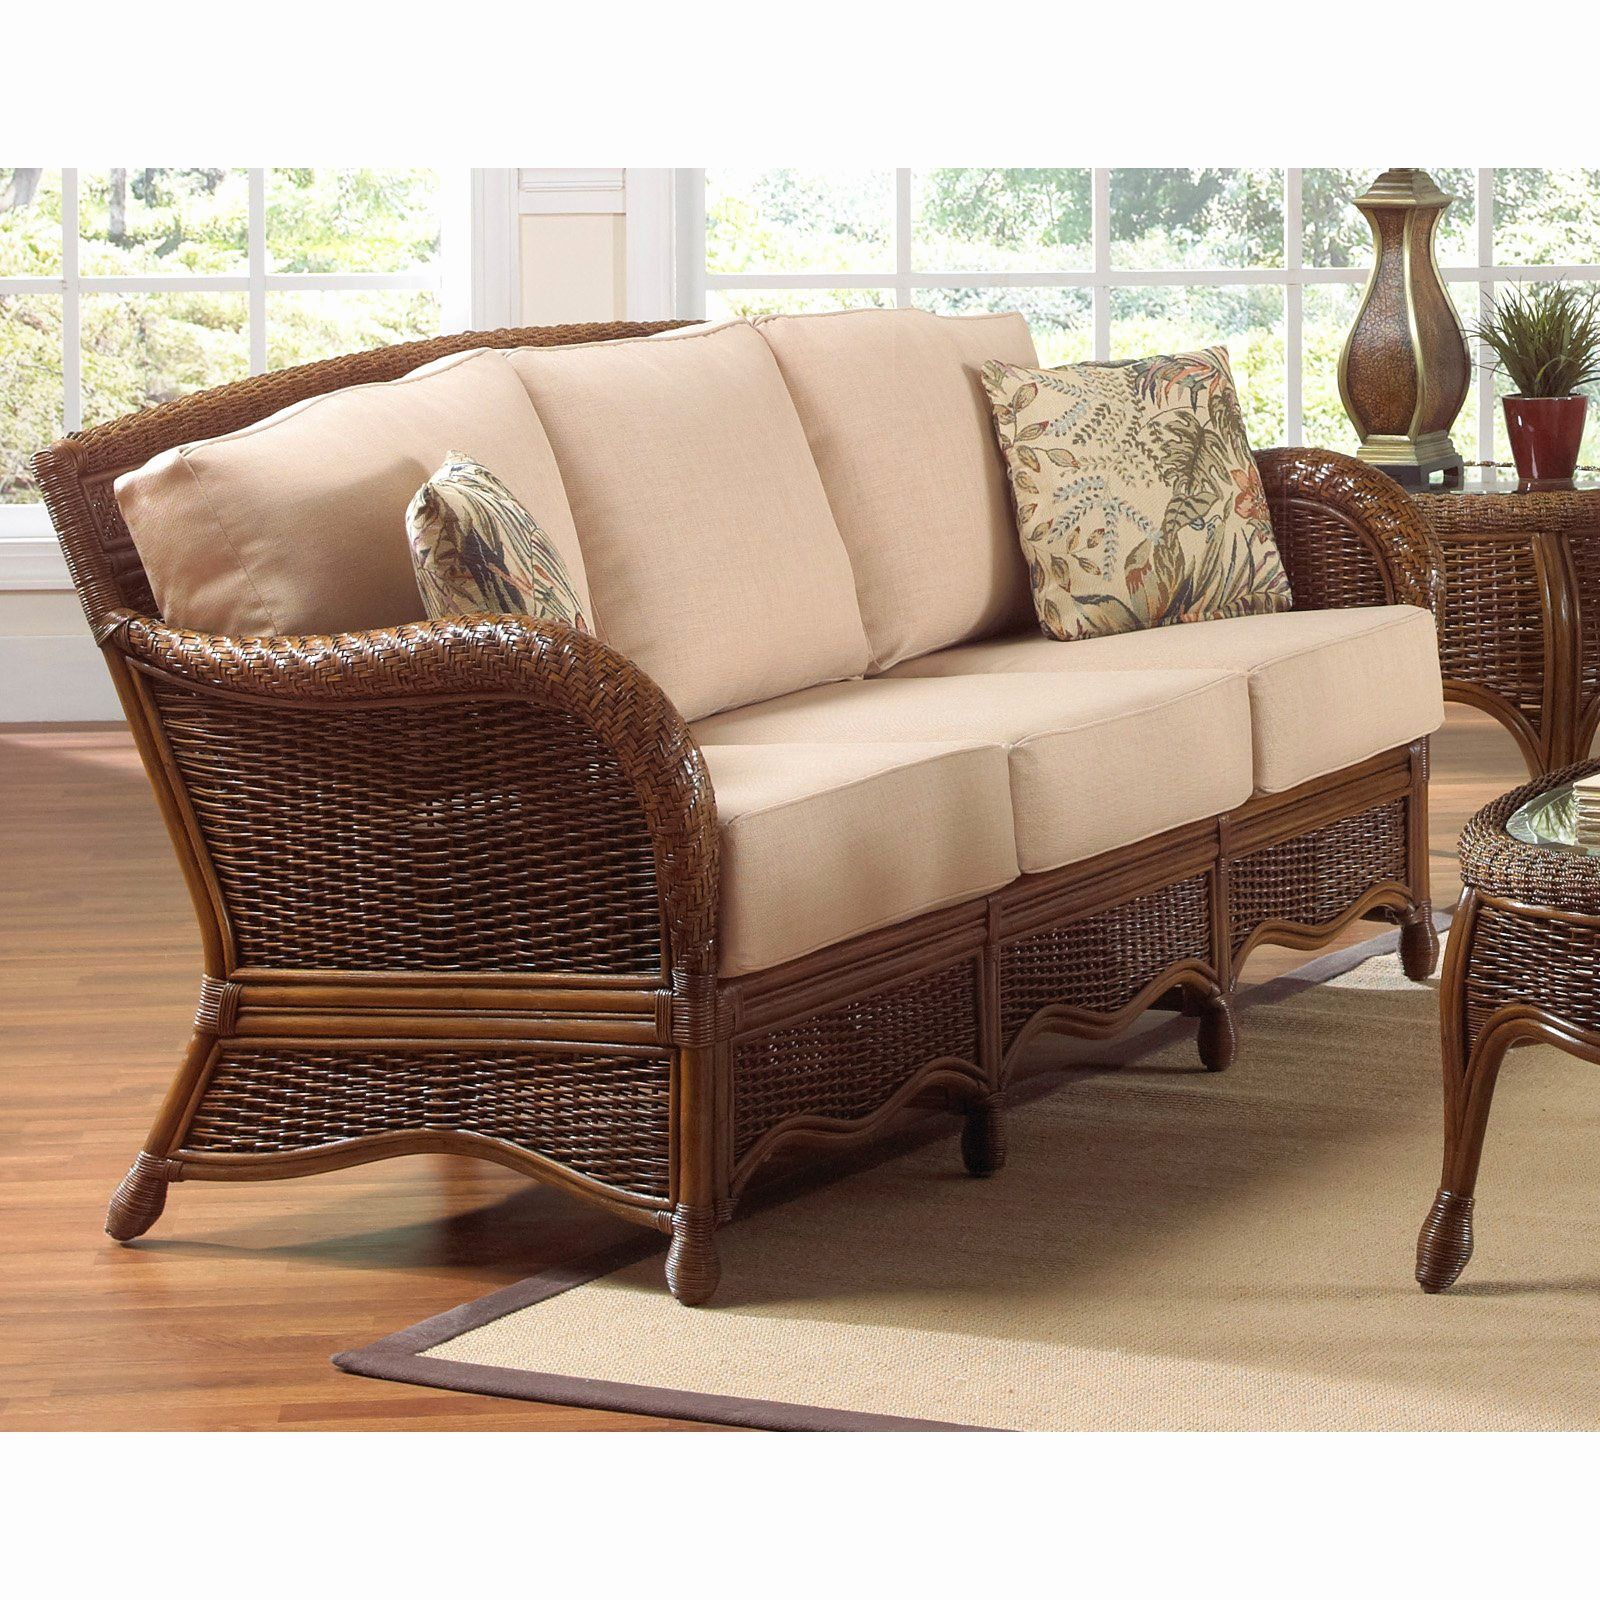 Amazing Modern Wicker Sofa Photos Modern Wicker Sofa Luxury Wicker